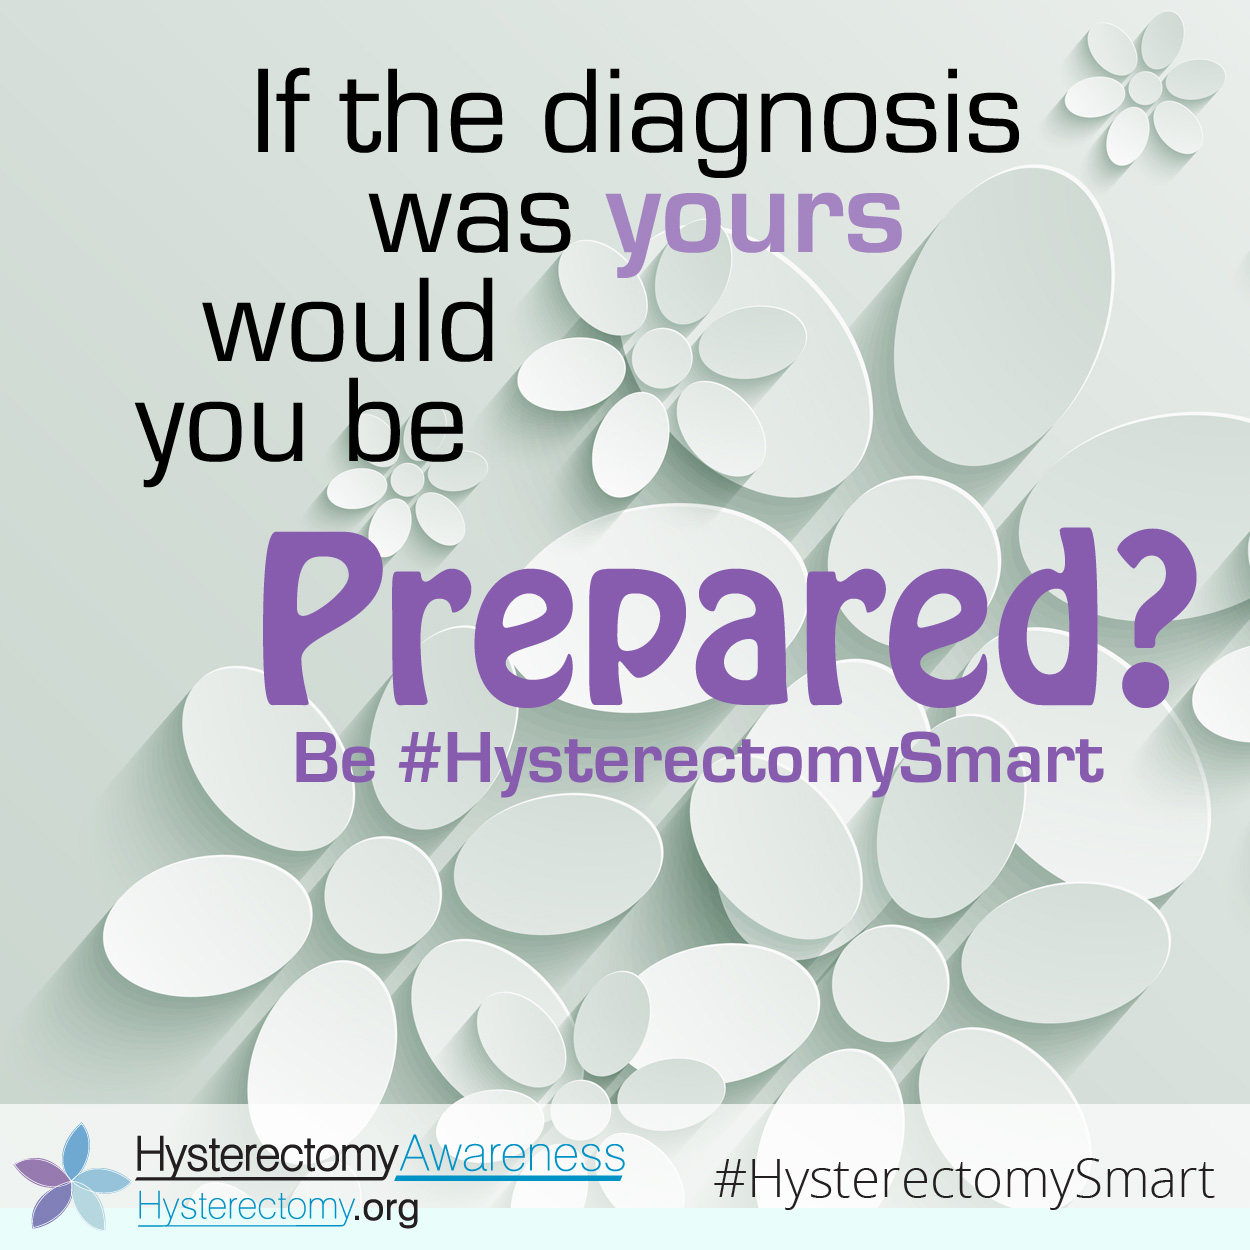 If the Diagnosis was yours would you be prepared? #HysterectomySmart